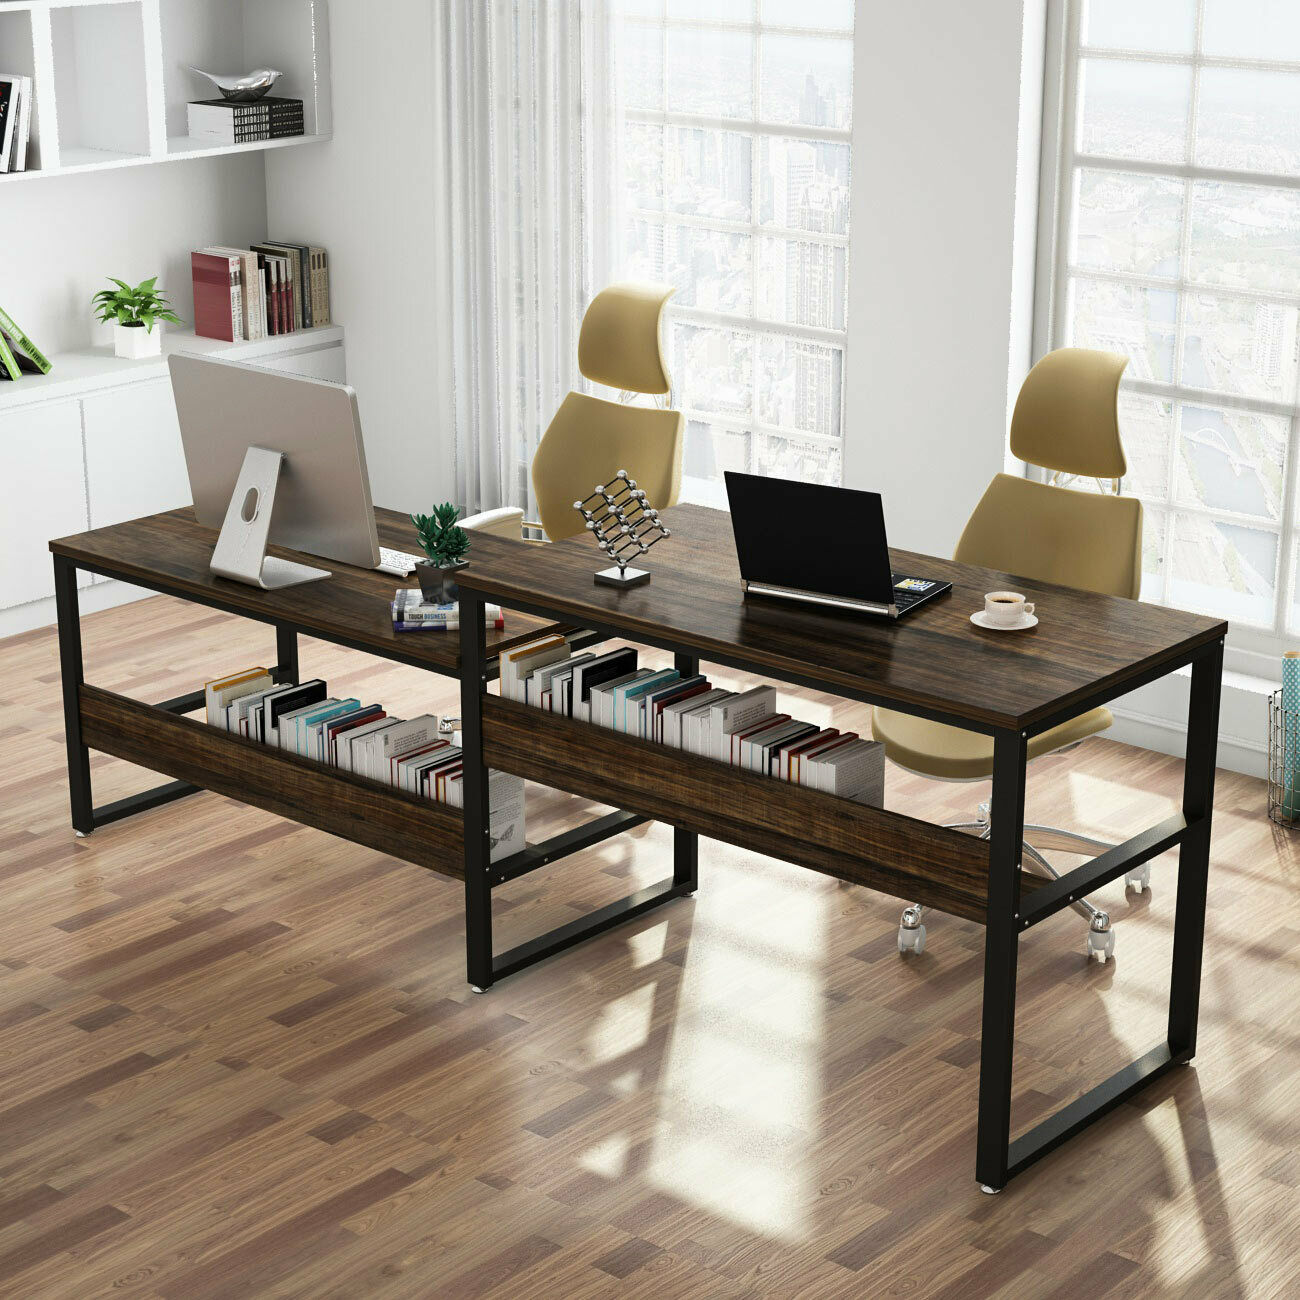 Tribesigns 94 48 Rustic Two Person Desk Double Computer Desk Sit Home Office